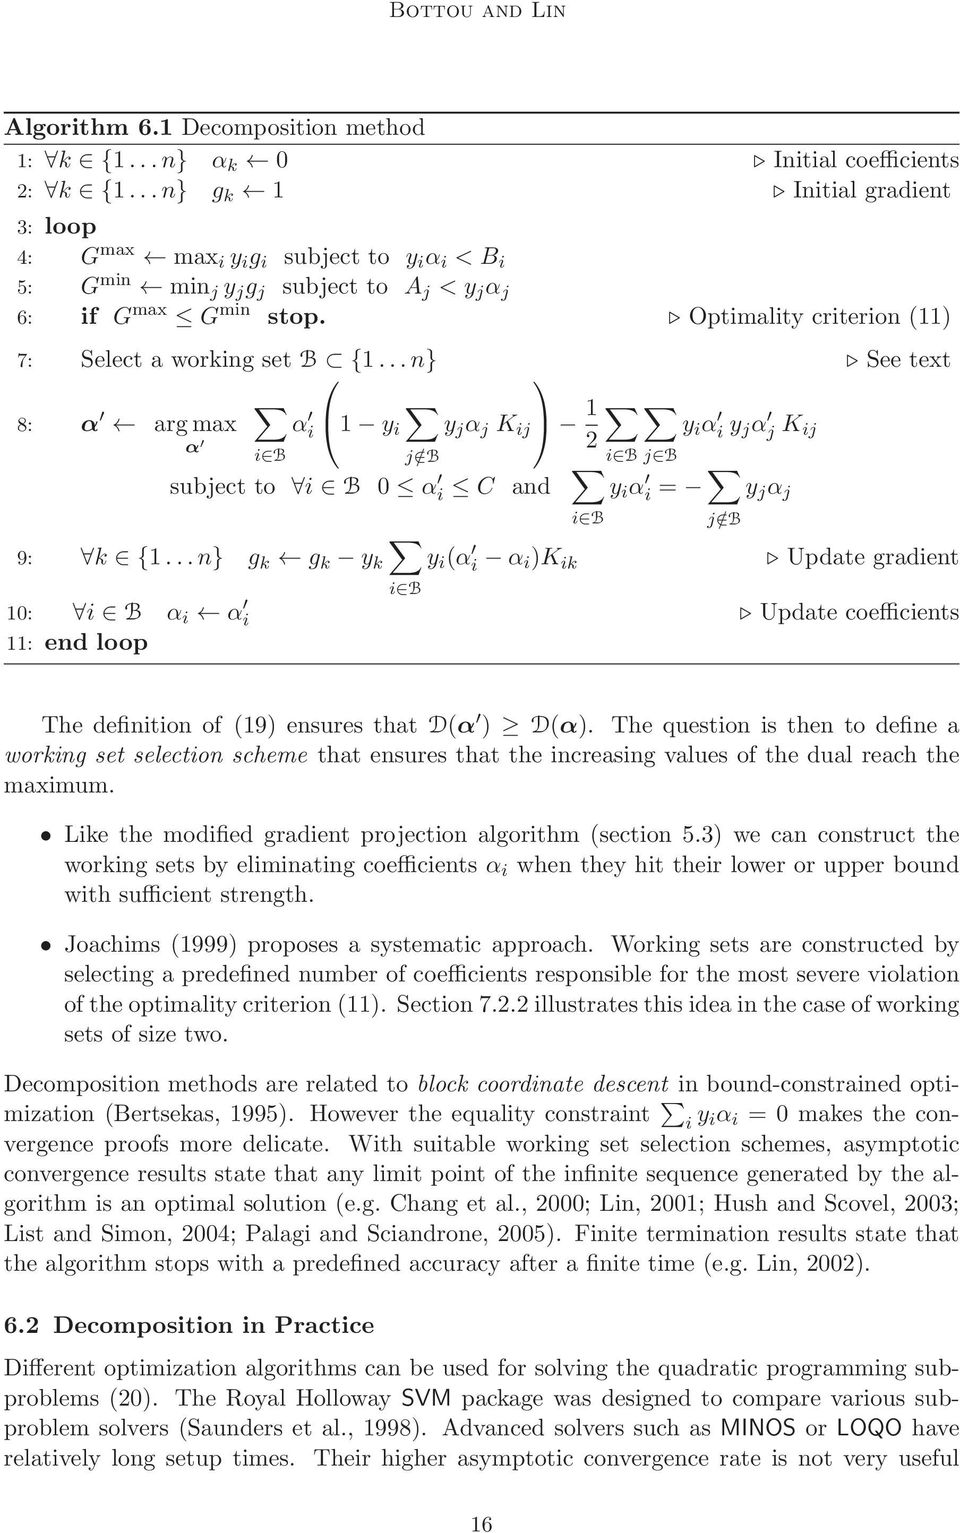 Optimality criterion (11) 7: Select a working set B {1...n} See text 8: α argmax α i 1 y i y j α j K ij 1 y i α i y j α j K ij α 2 i B j/ B subject to i B 0 α i C and i B 9: k {1.